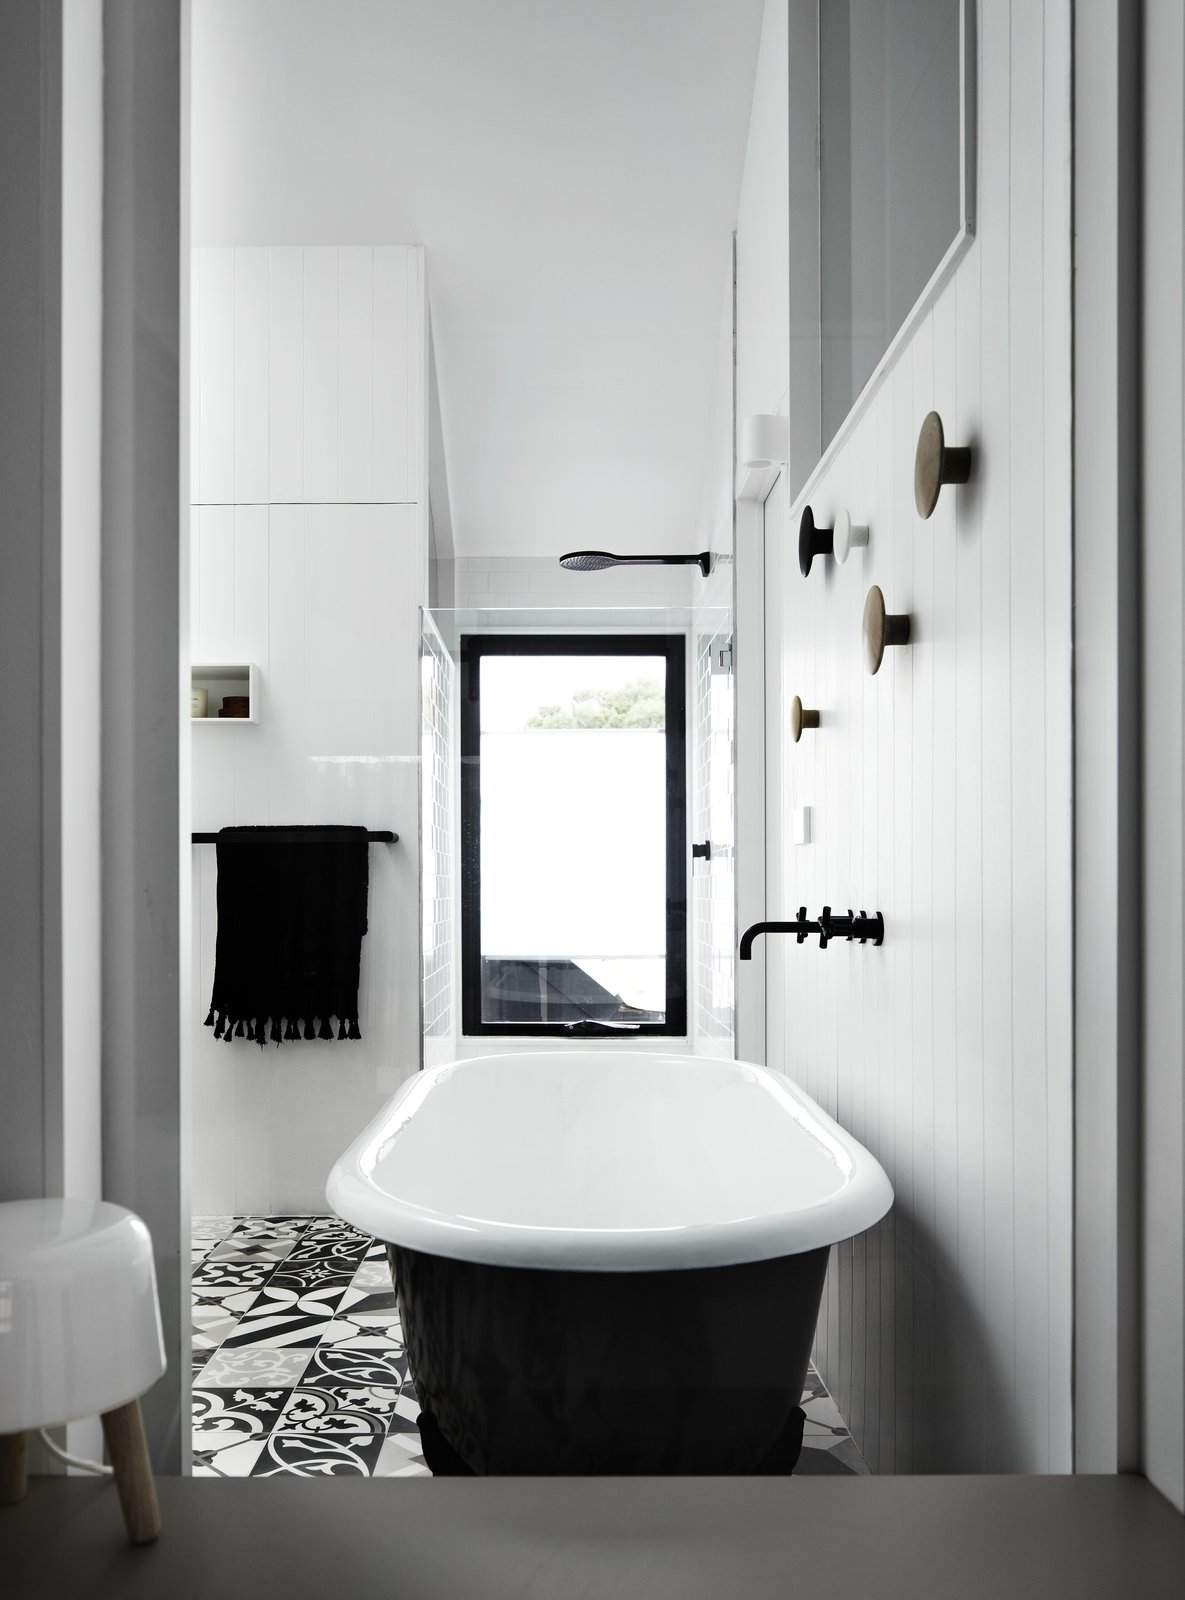 Bath, Freestanding, and Corner The only door in the addition is a repurposed stable door in the ensuite bathroom, which has a freestanding bathtub and monochromatic tiles.     Bath Corner Freestanding Photos from A Melbourne Home Is Treated to a Striking Barn–Like Extension